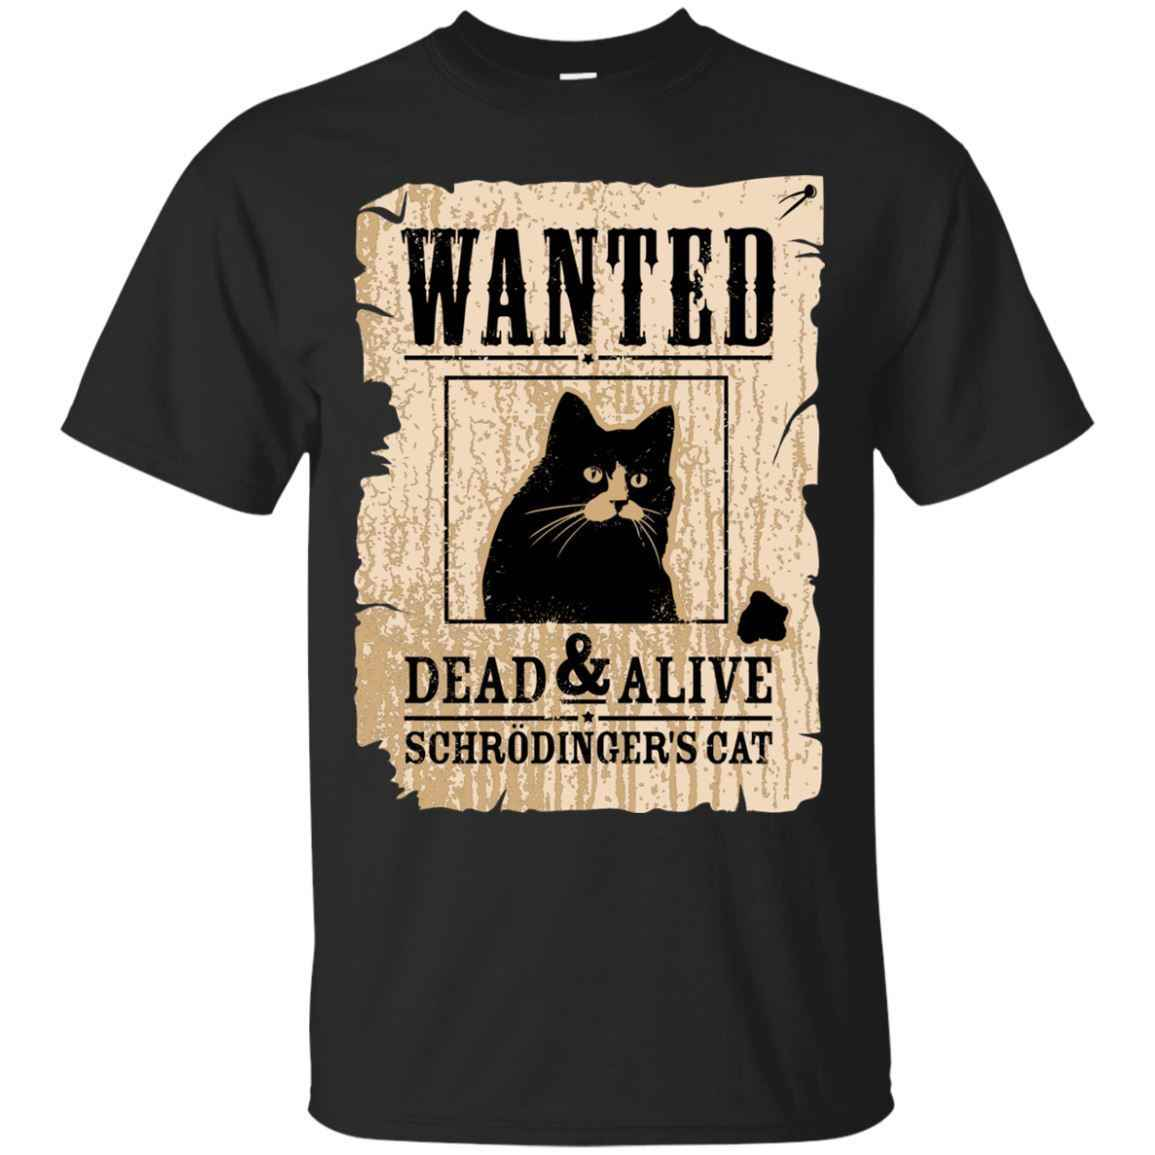 8d8205d5 Detail Feedback Questions about Black T Shirt Funny Wanted Science  Schrodinger's Cat Dead Or Alive Shirt Cool Casual pride t shirt men Unisex  New Fashion on ...